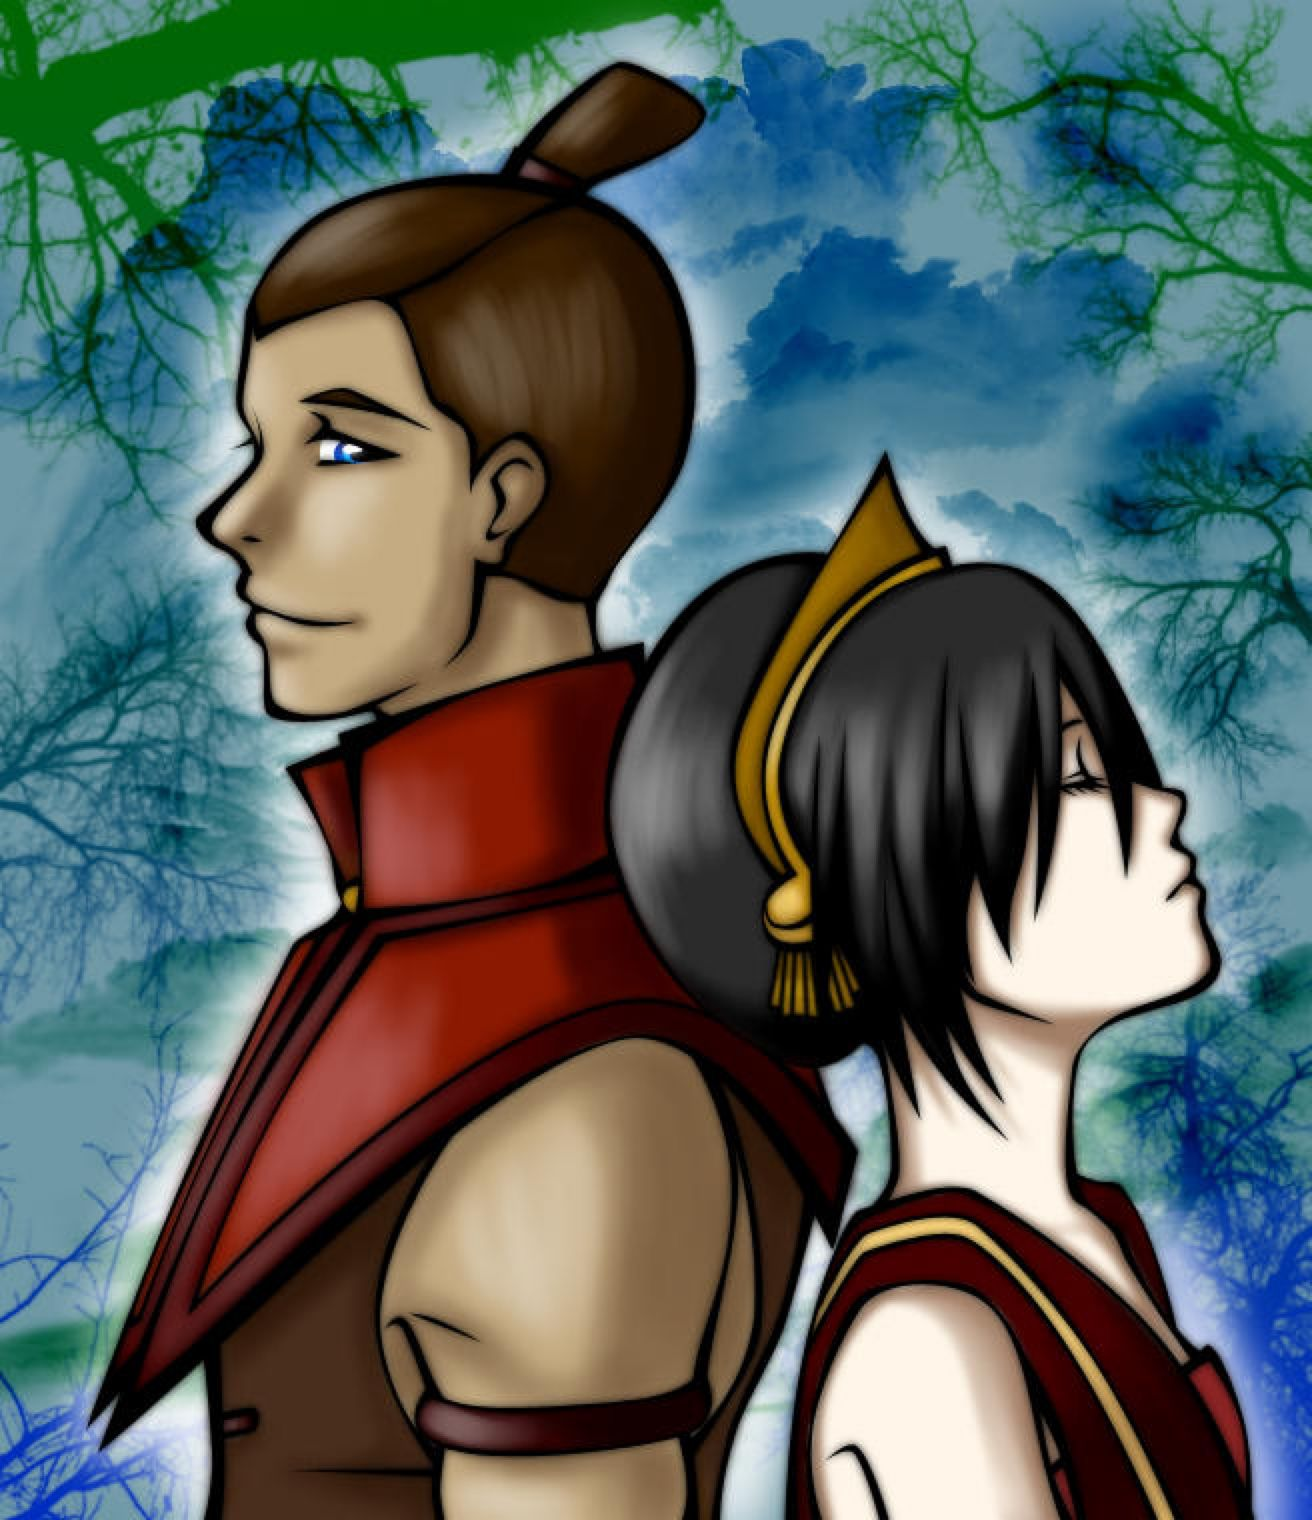 Toph and Sokka by some1ders13 on DeviantArt (With images